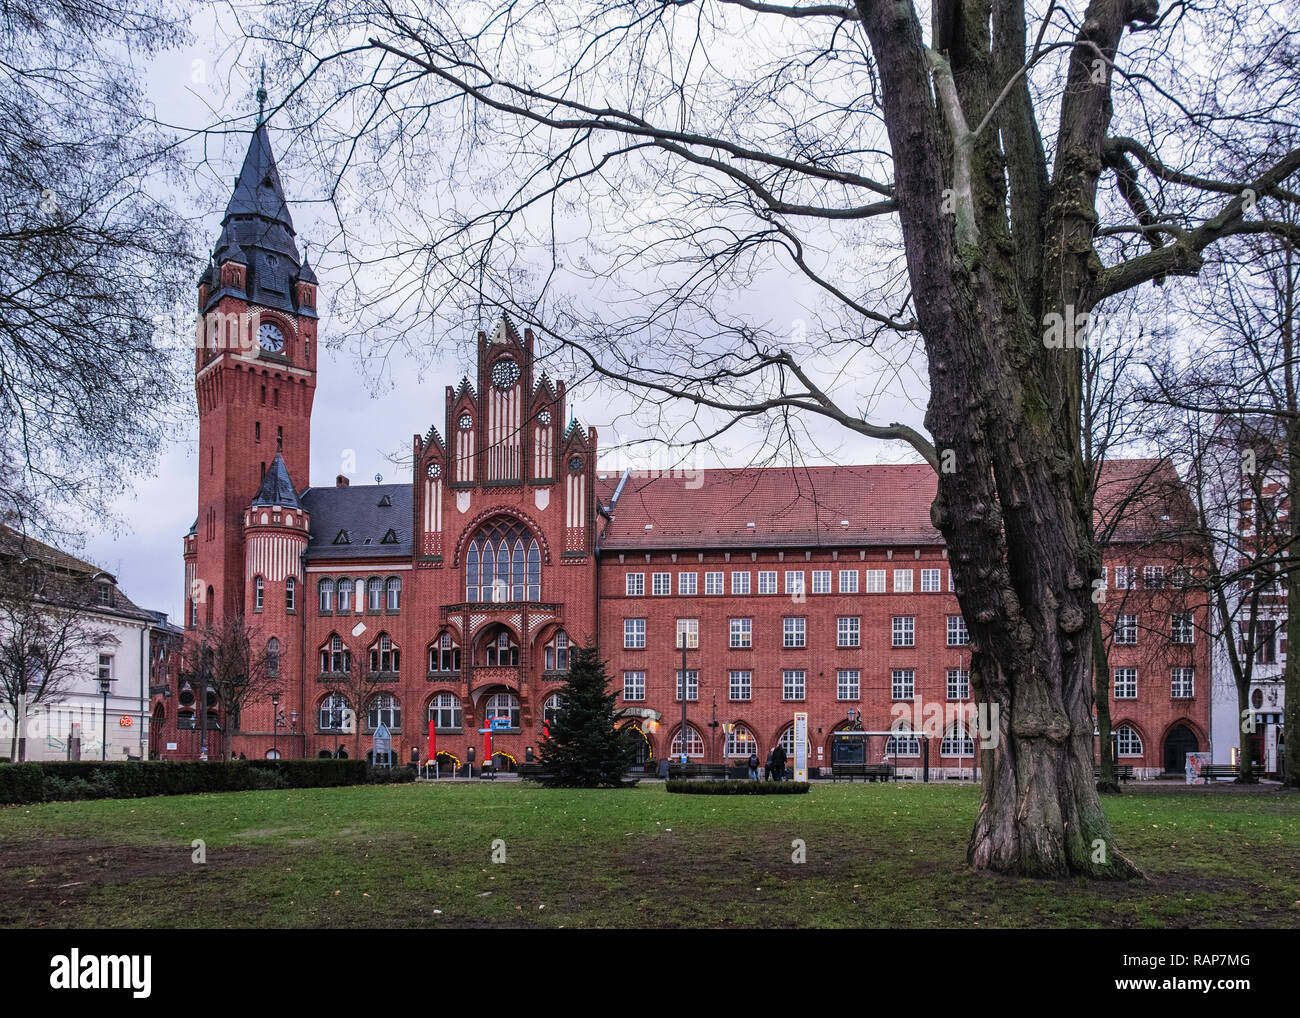 Berlin, Rathaus Köpenick. Red Brick Gothic-style town hall by Hugo Kinzer and Hans Schütte built 1901-5. Historic listed building - Stock Image